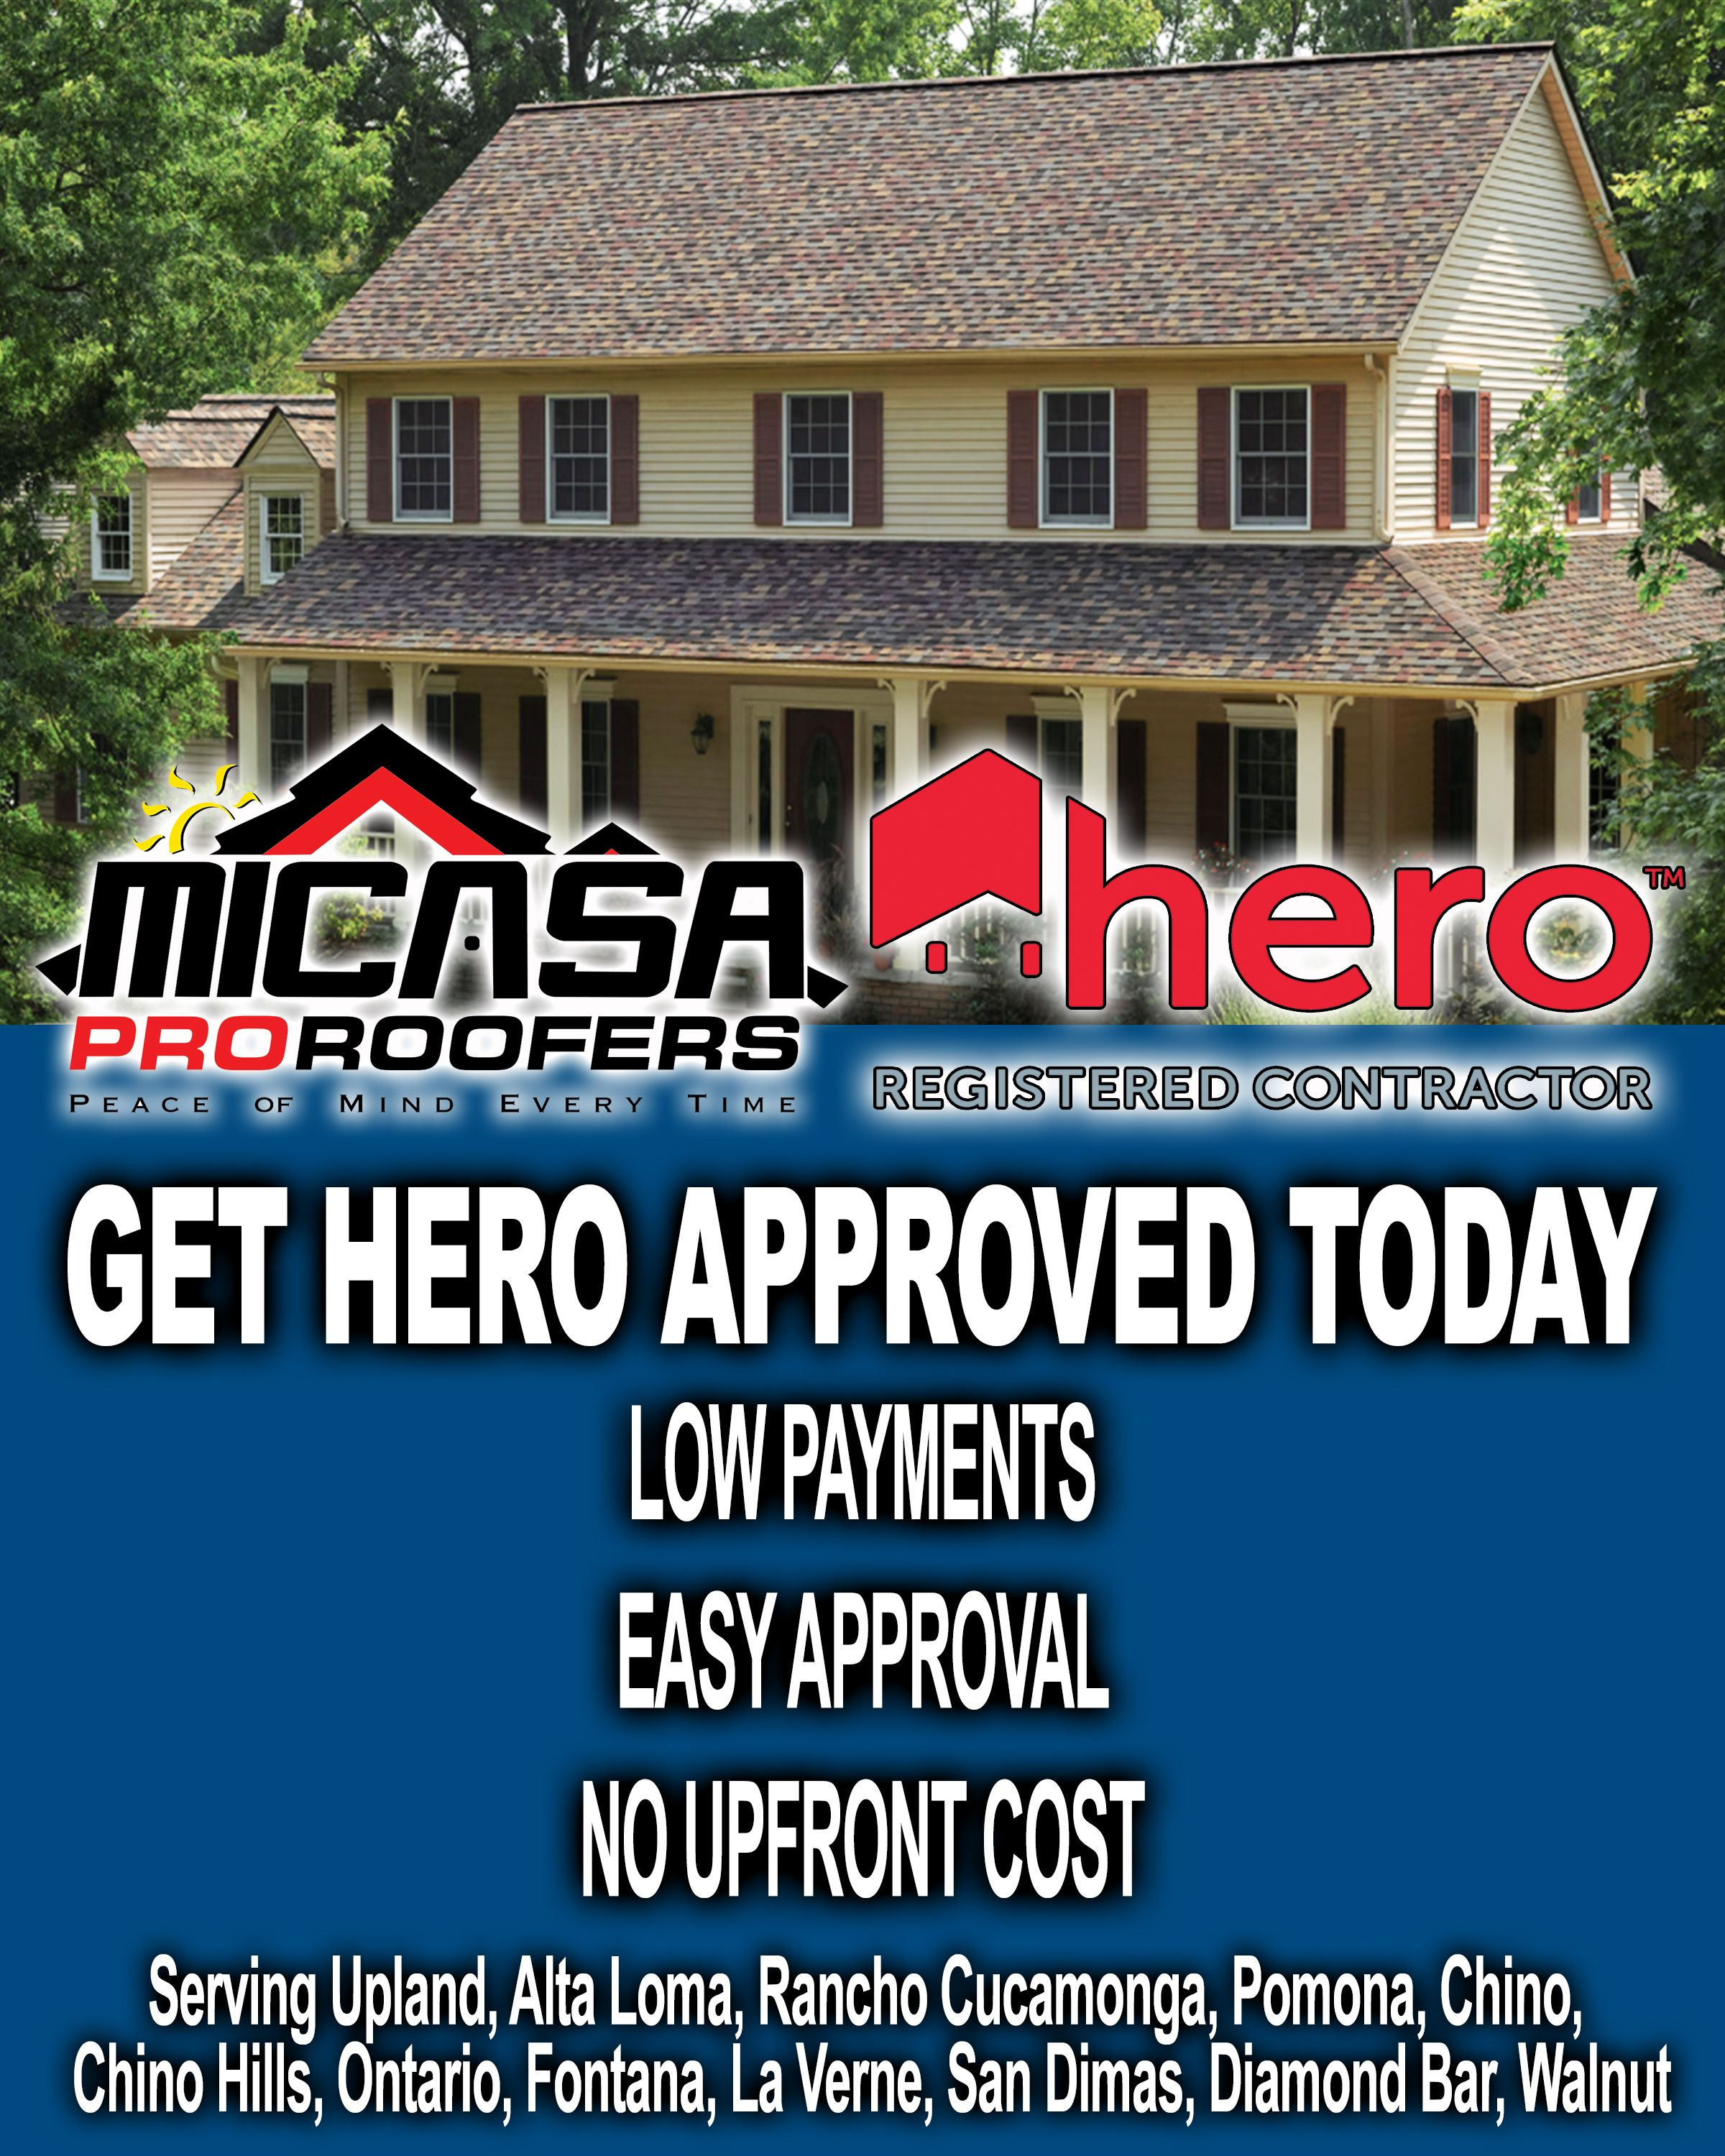 Pin By Micasa Roofing On Micasa Pro Roofers Upland Ads Alta Loma Roofing Business Cool Roof